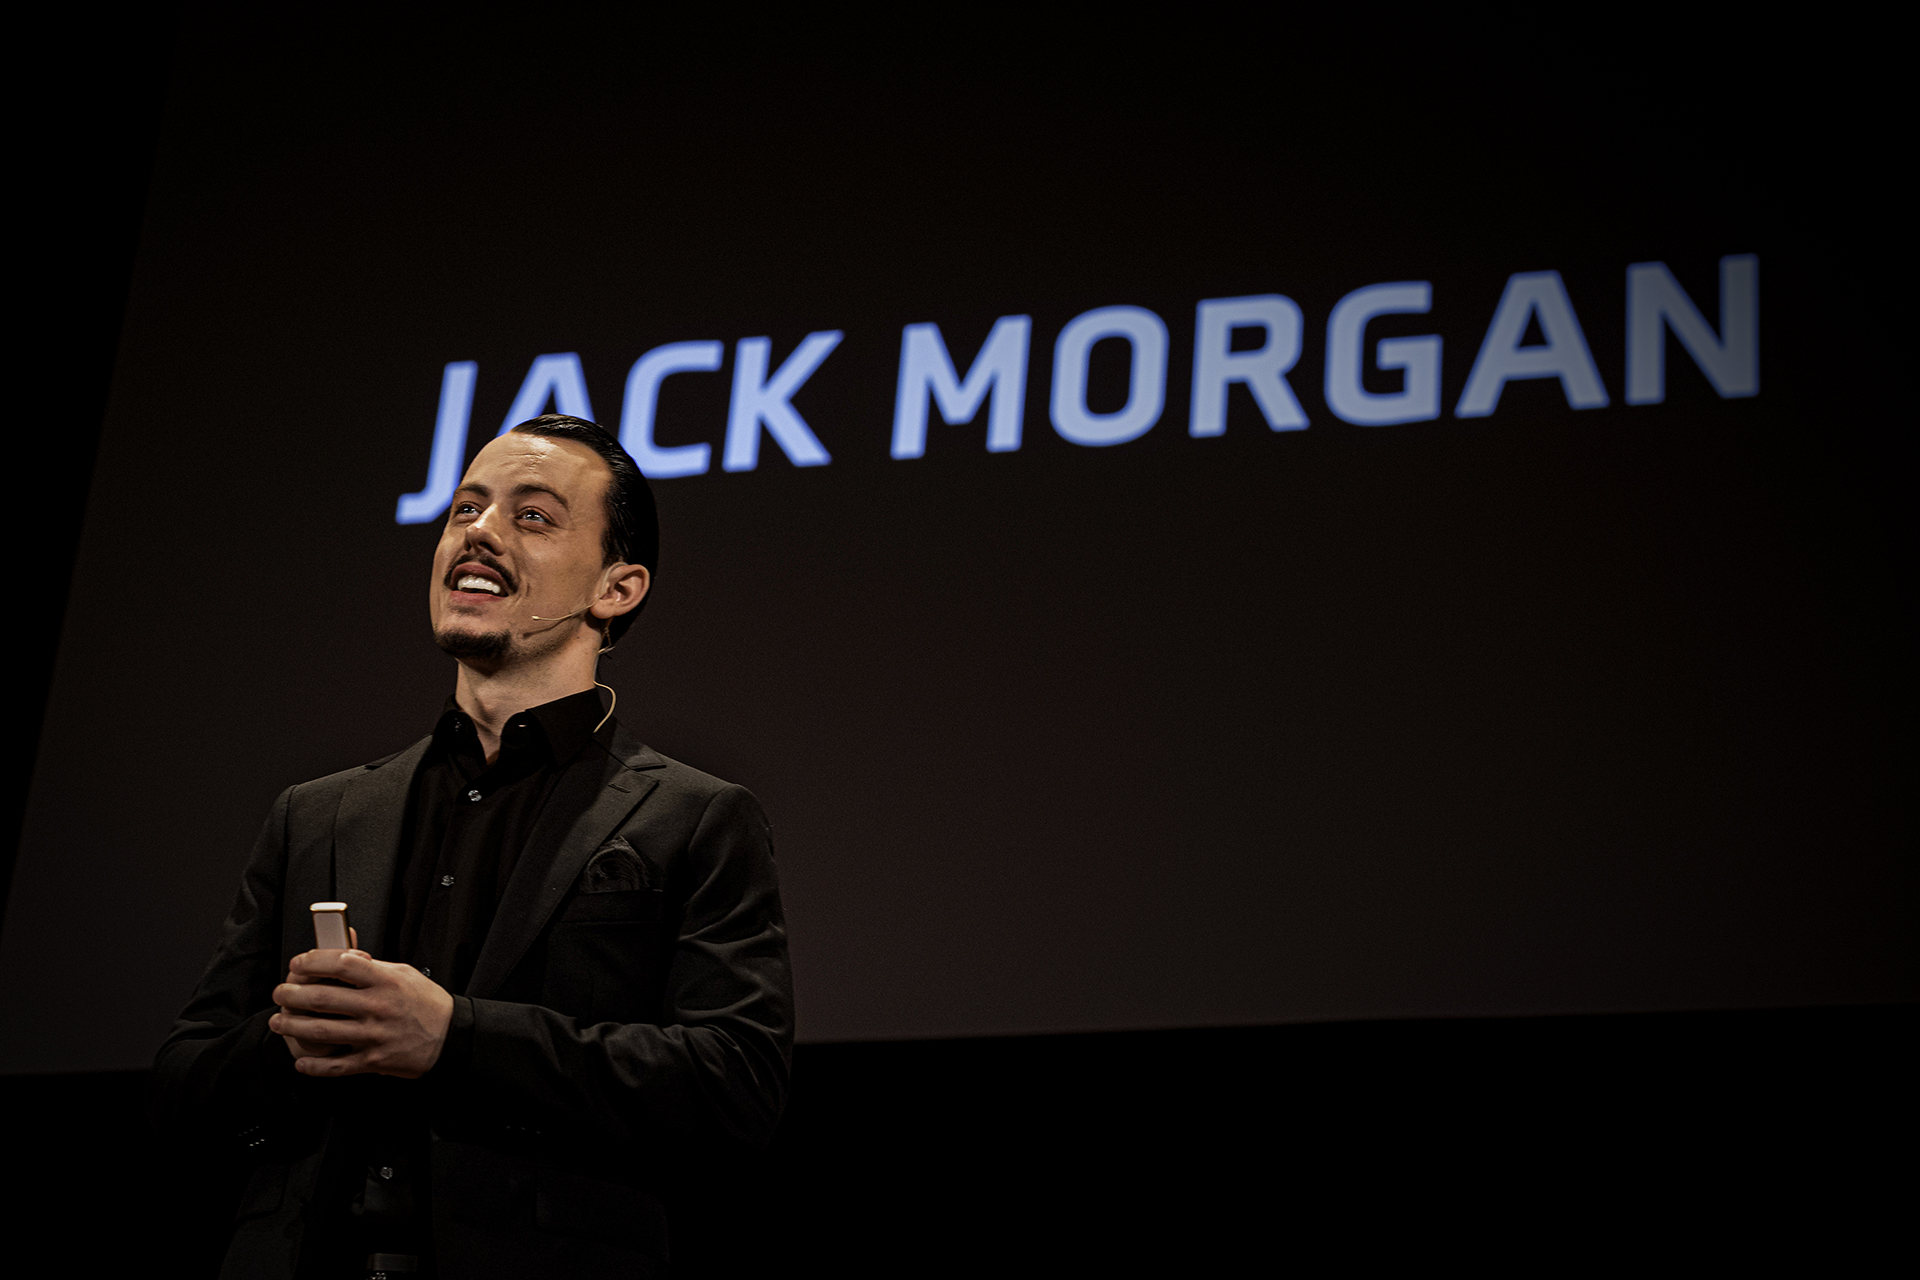 Jack Morgan gives a TED Talk